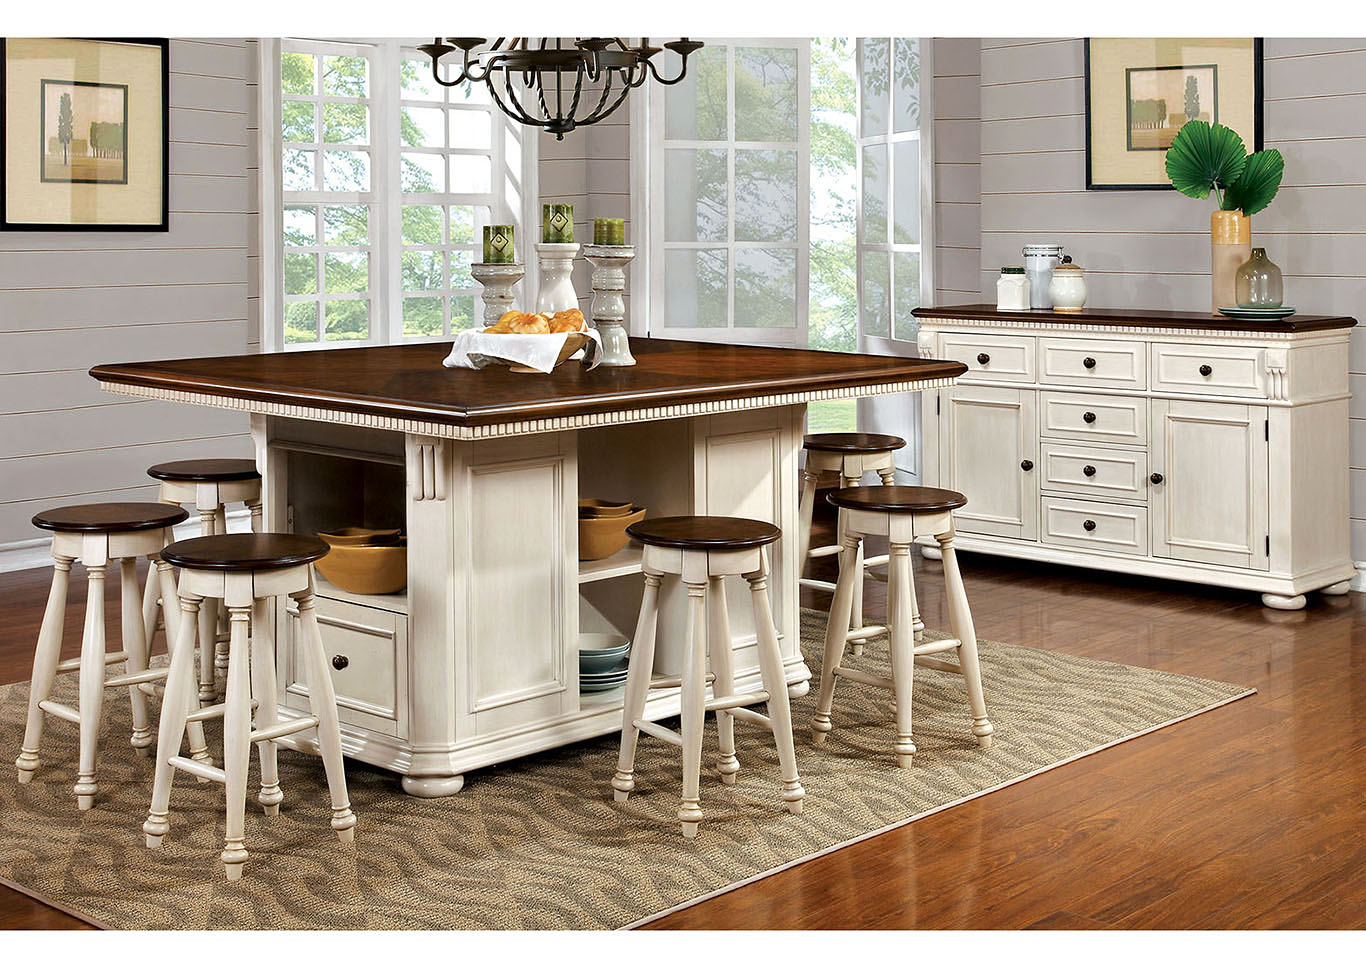 Cool Furniture Ville Bronx Ny Sabrina Cherry And White Counter Lamtechconsult Wood Chair Design Ideas Lamtechconsultcom